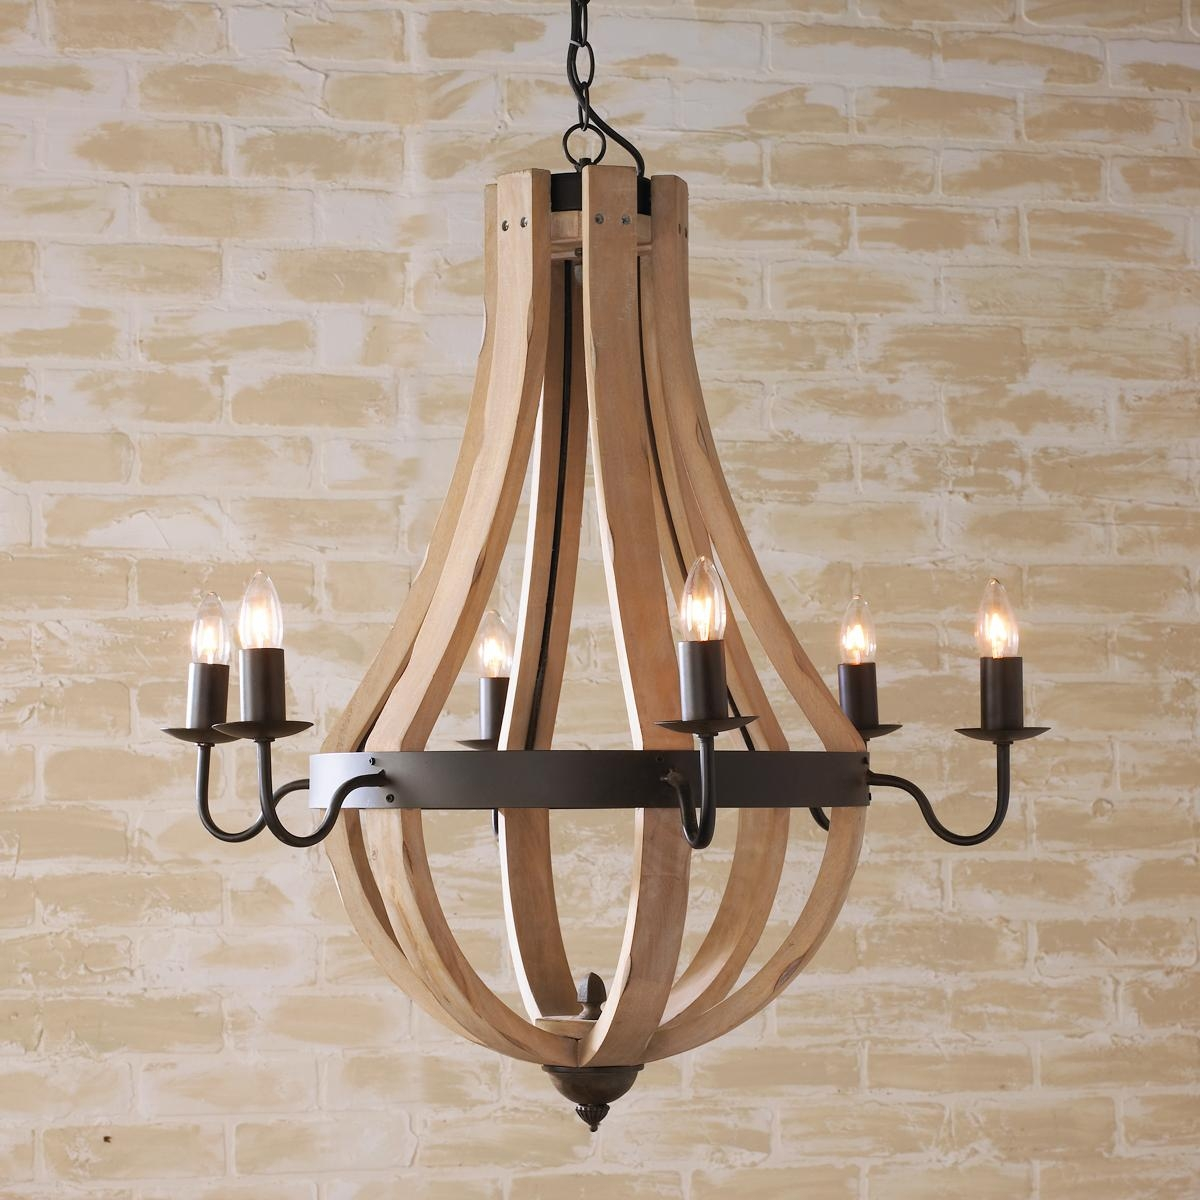 Wood Chandeliers Creative Home Decor Pinterest Plugs Throughout Wooden Chandeliers (View 2 of 15)